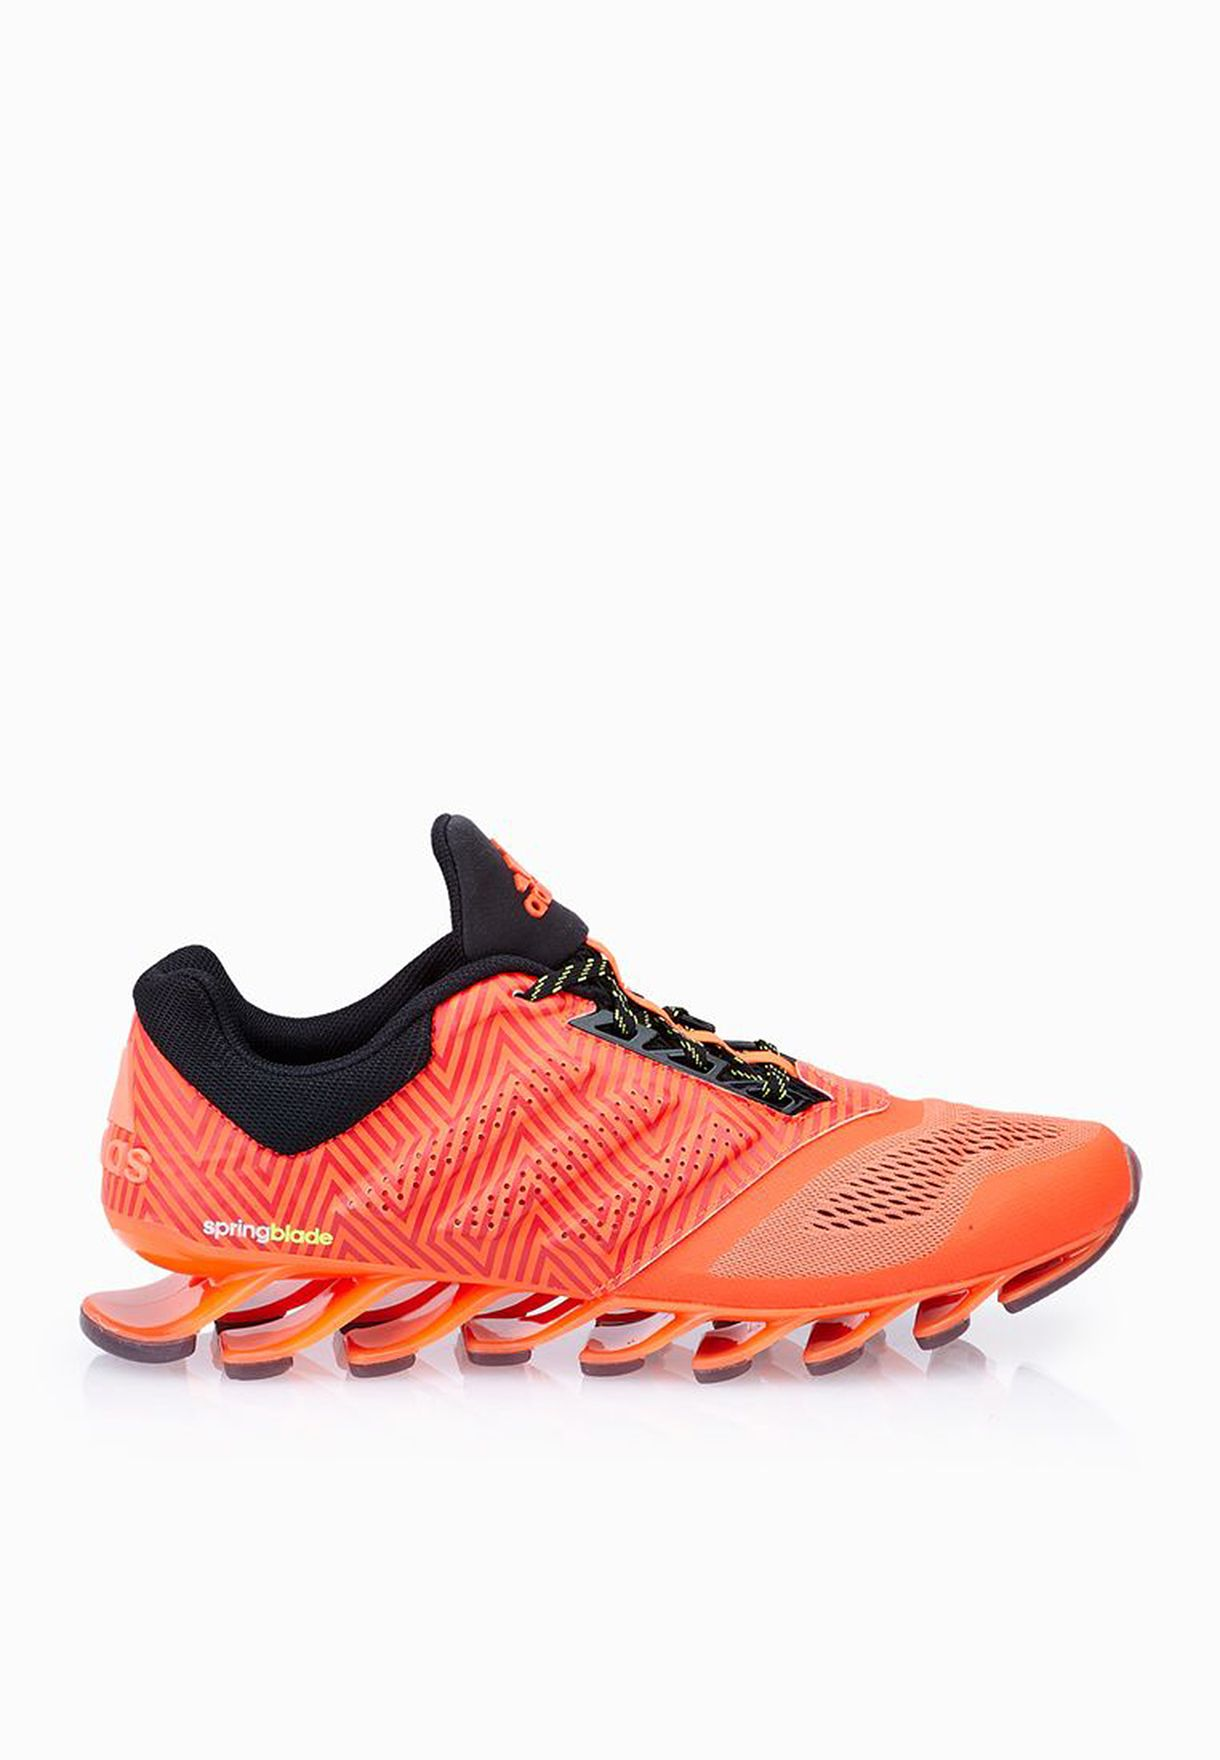 new arrival 65cdd b0376 Springblade Drive 2 M